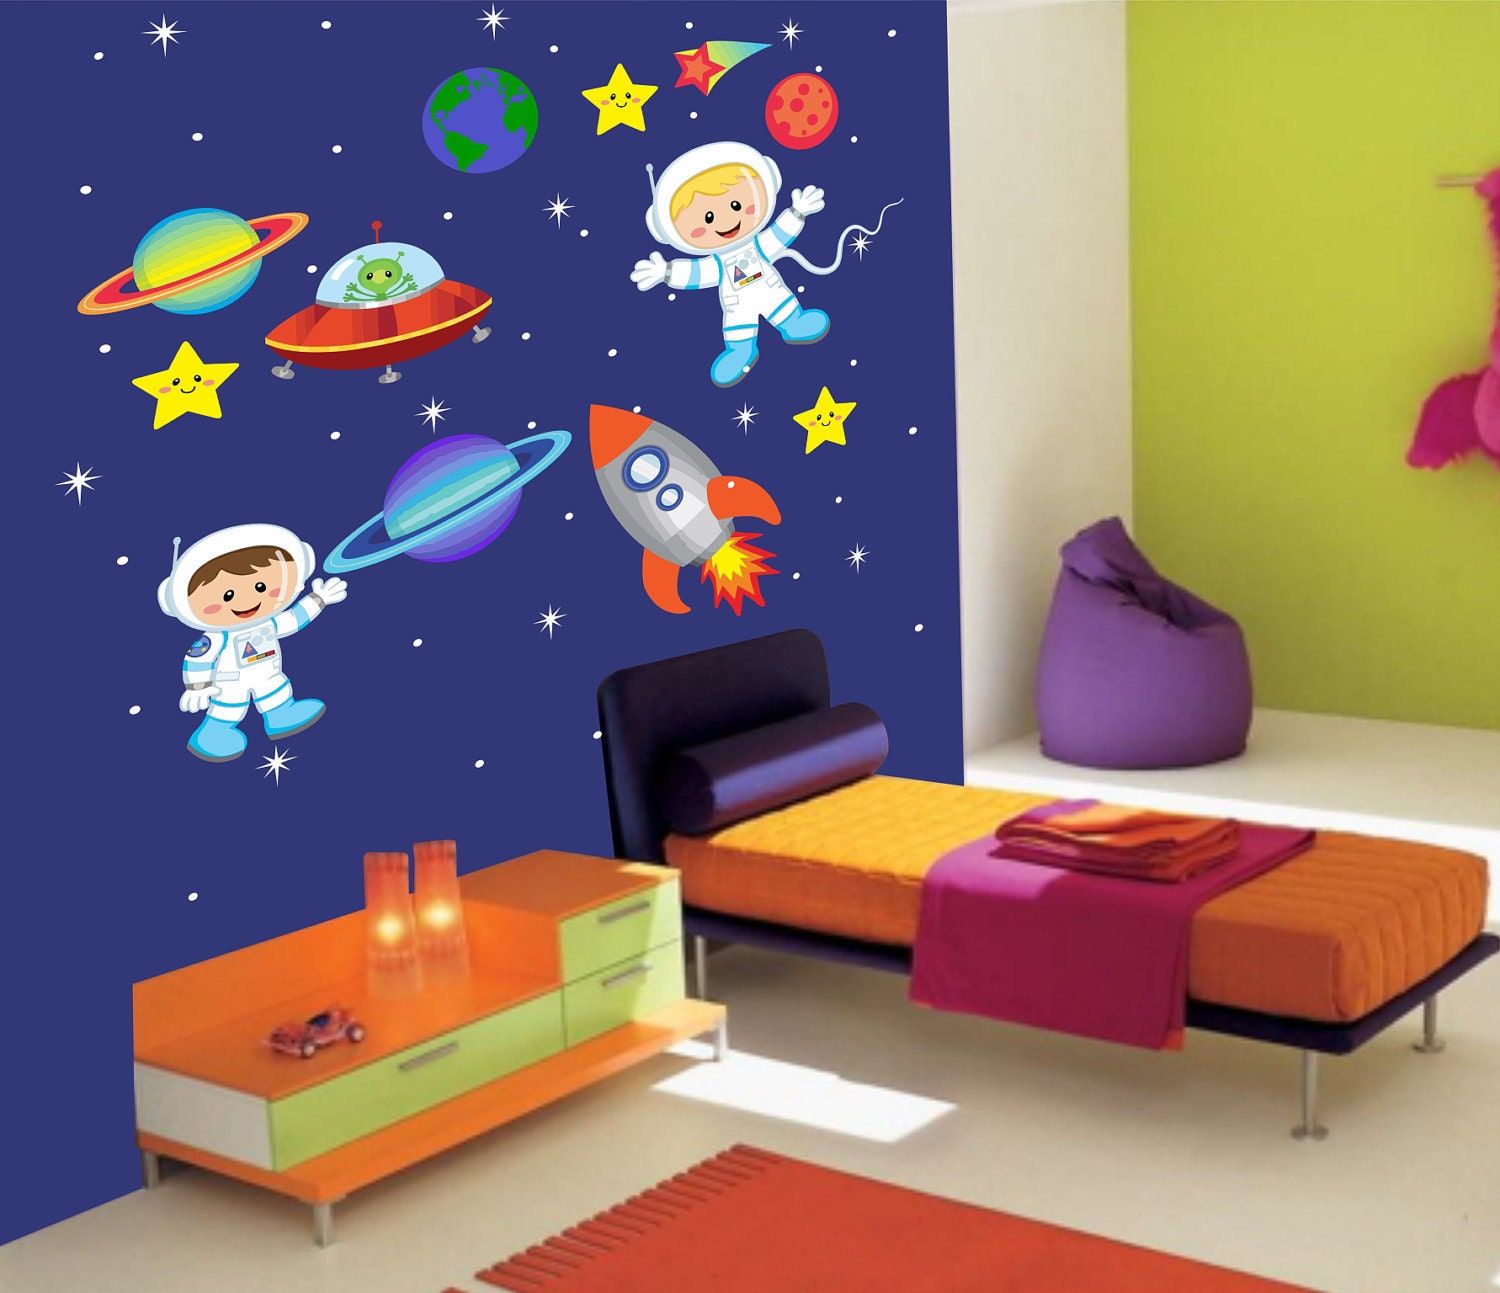 outer space children wall decal 340 by stickemupwallart on spacecraft and astronaut